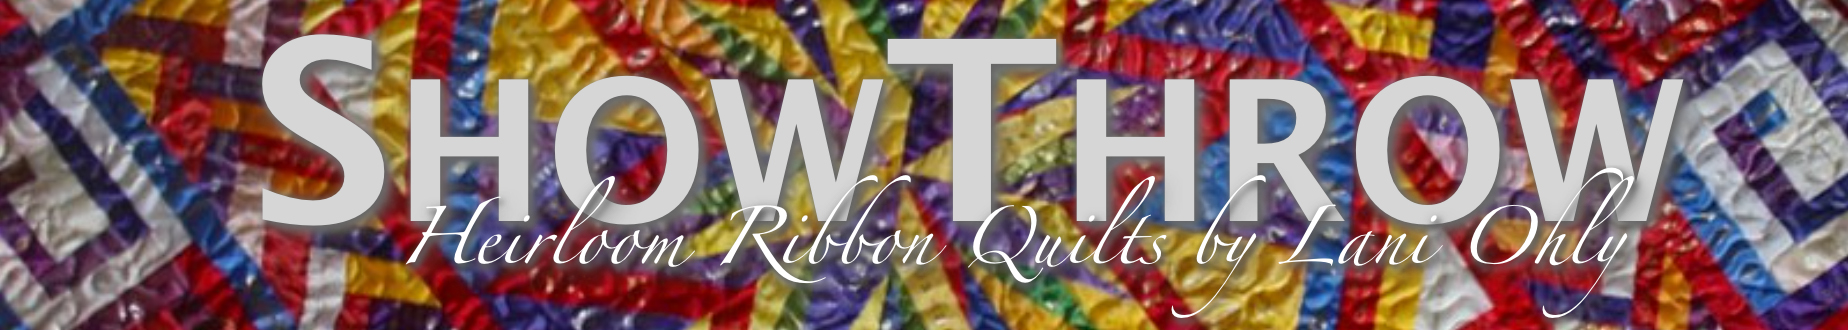 ShowThrow Ribbon Quilts